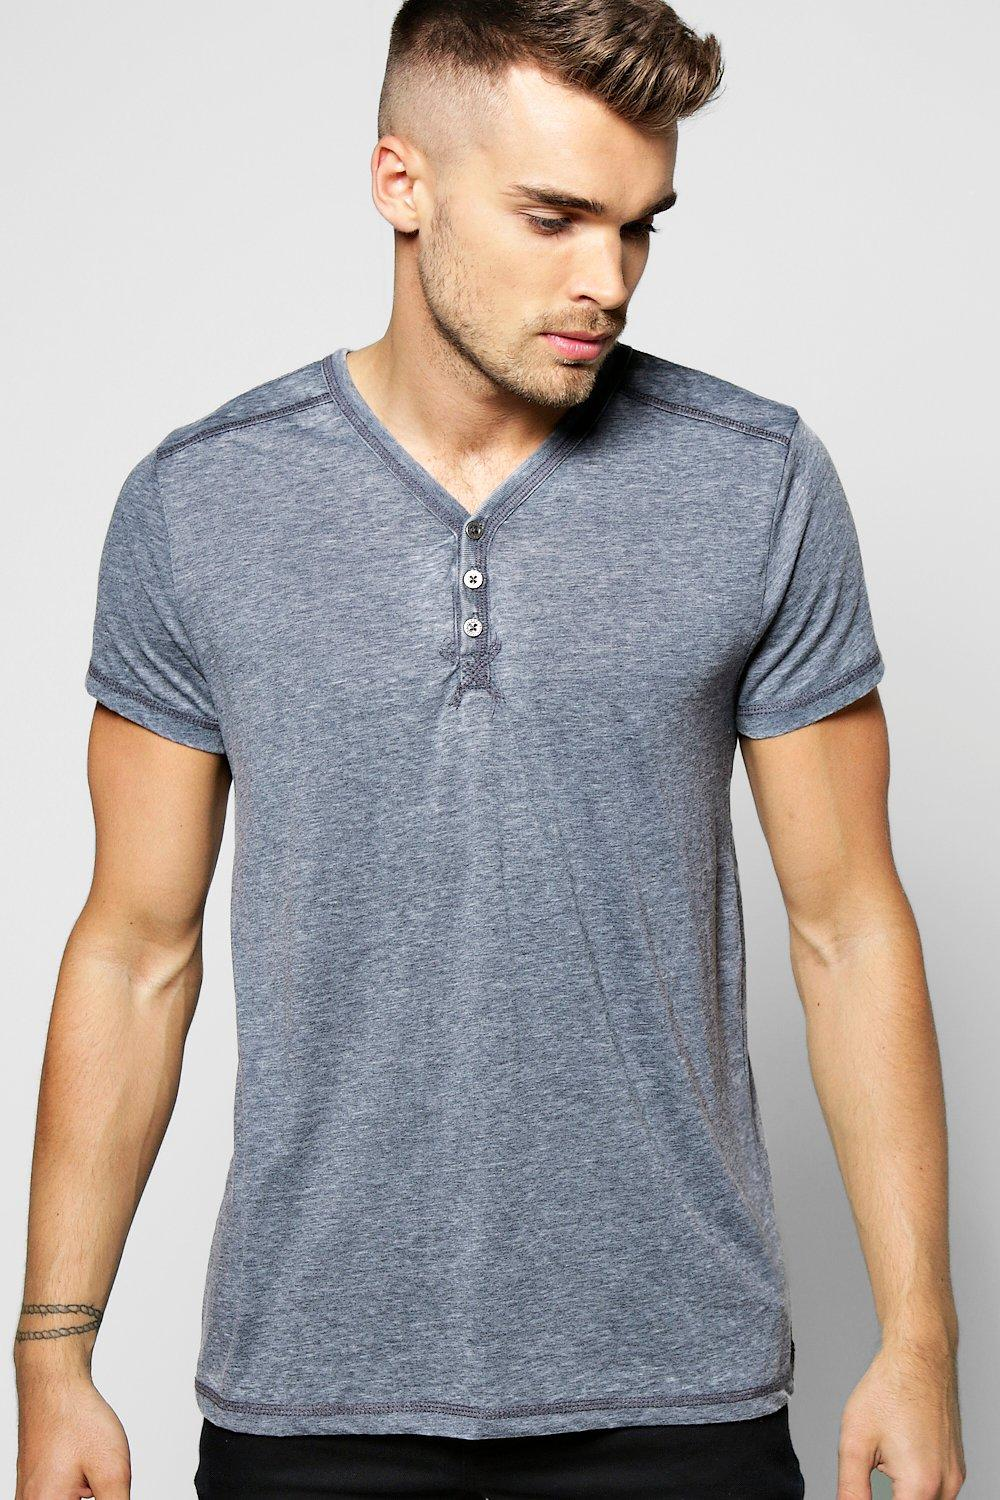 Burnout Tee With V Neck Placket